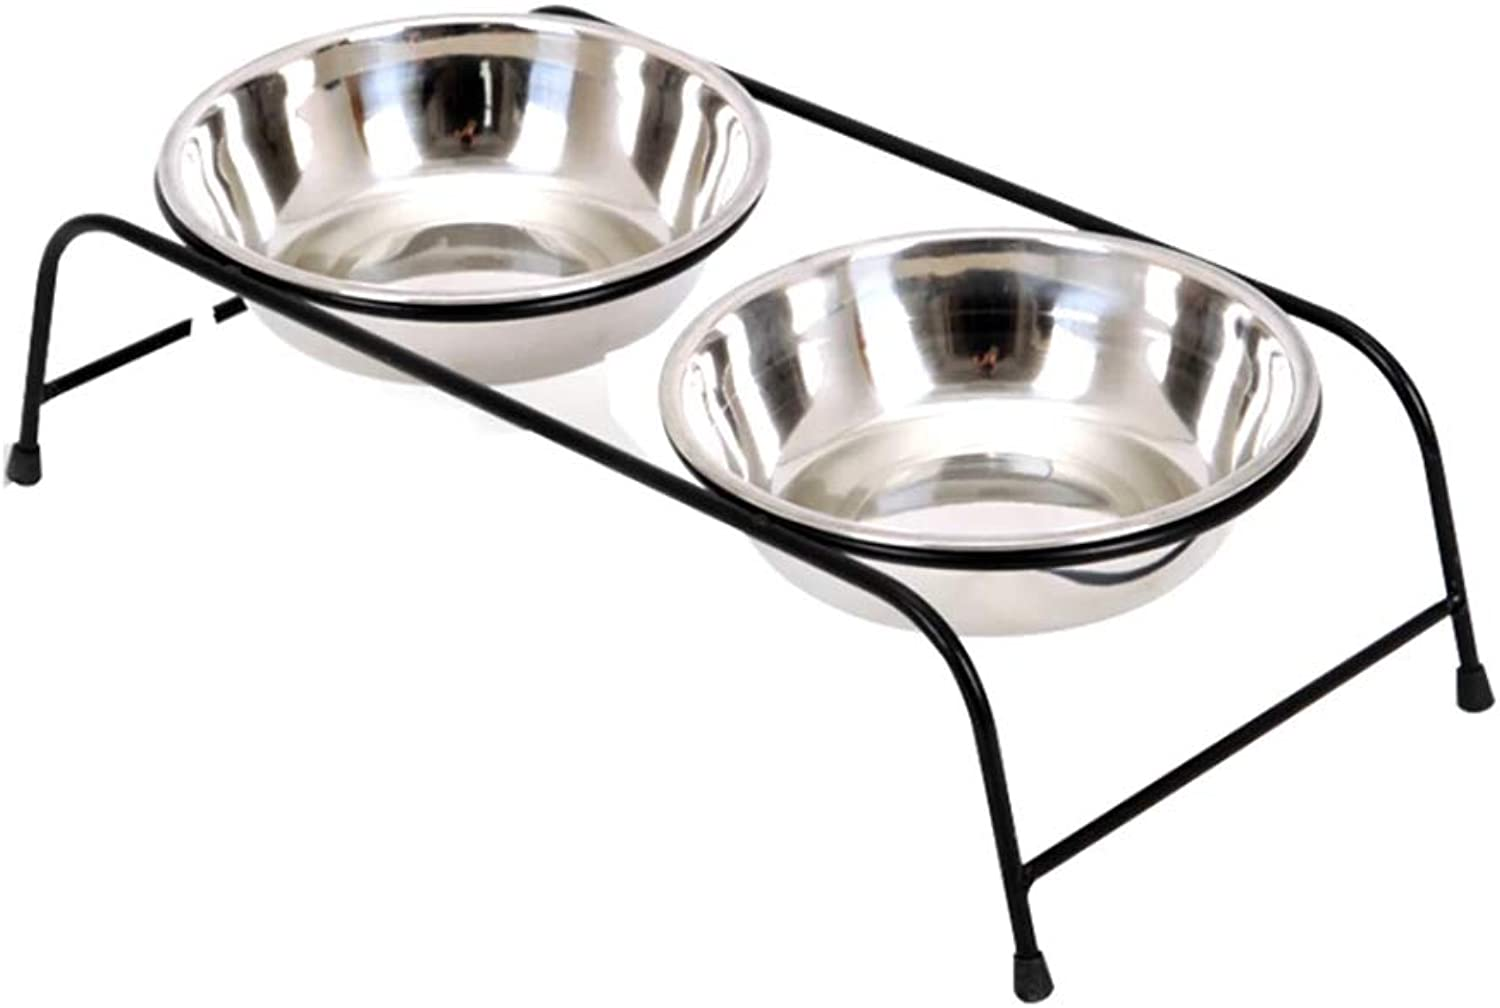 Dog Bowl Stainless Steel Bracket Ceramic Pet Supplies Cat and Dog Food Bowl Drinking Basin (Edition   LXZ01, Size   S)